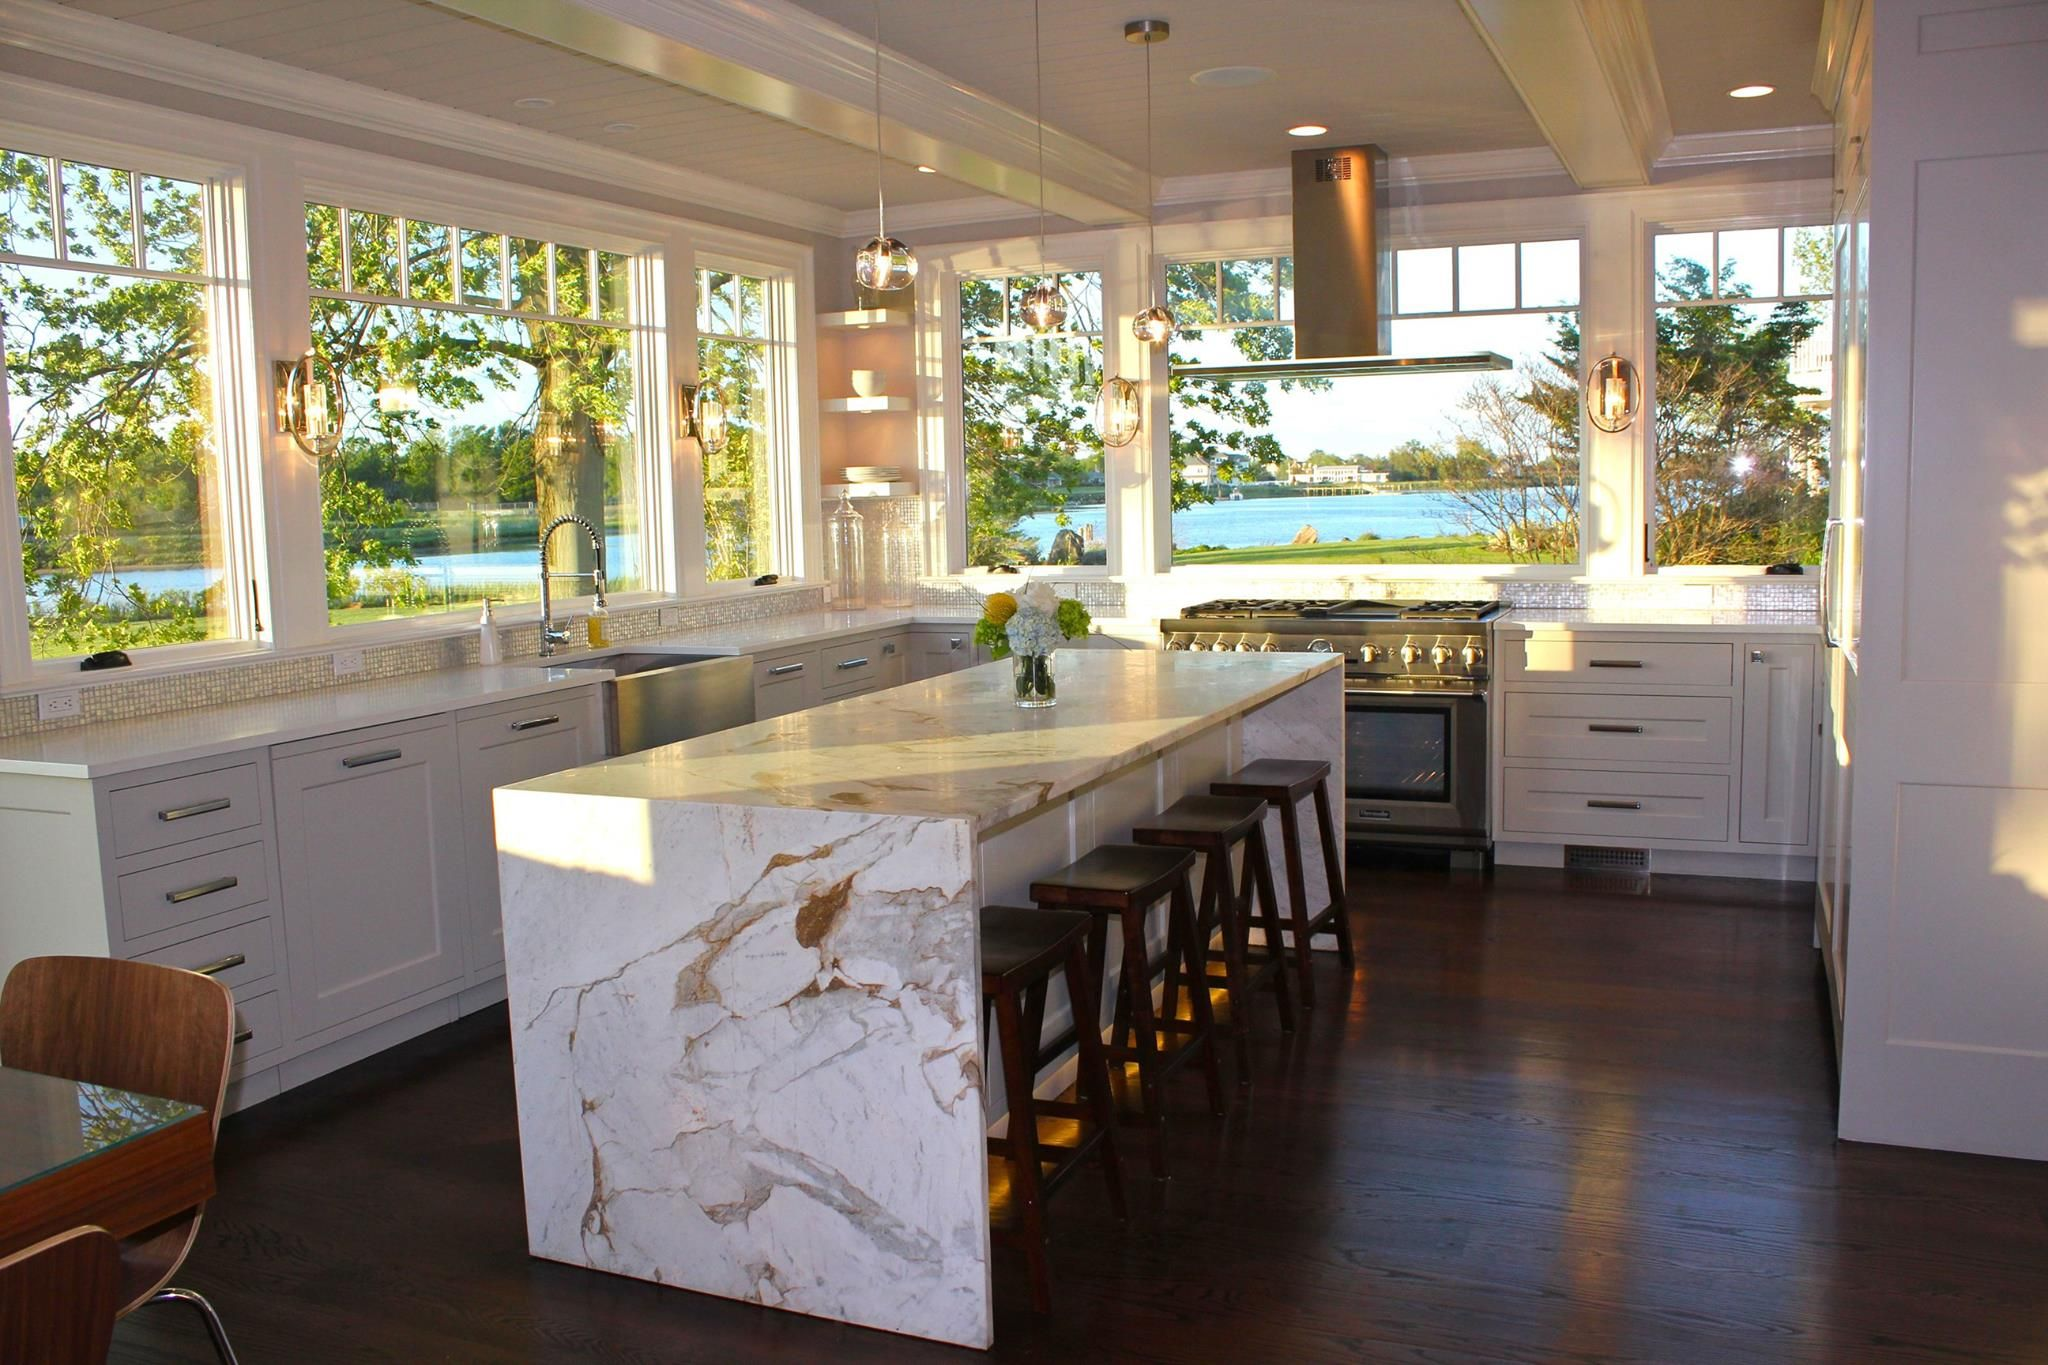 This Thermador Kitchen Is Beautiful! Love The Windows. When Placing A Hood